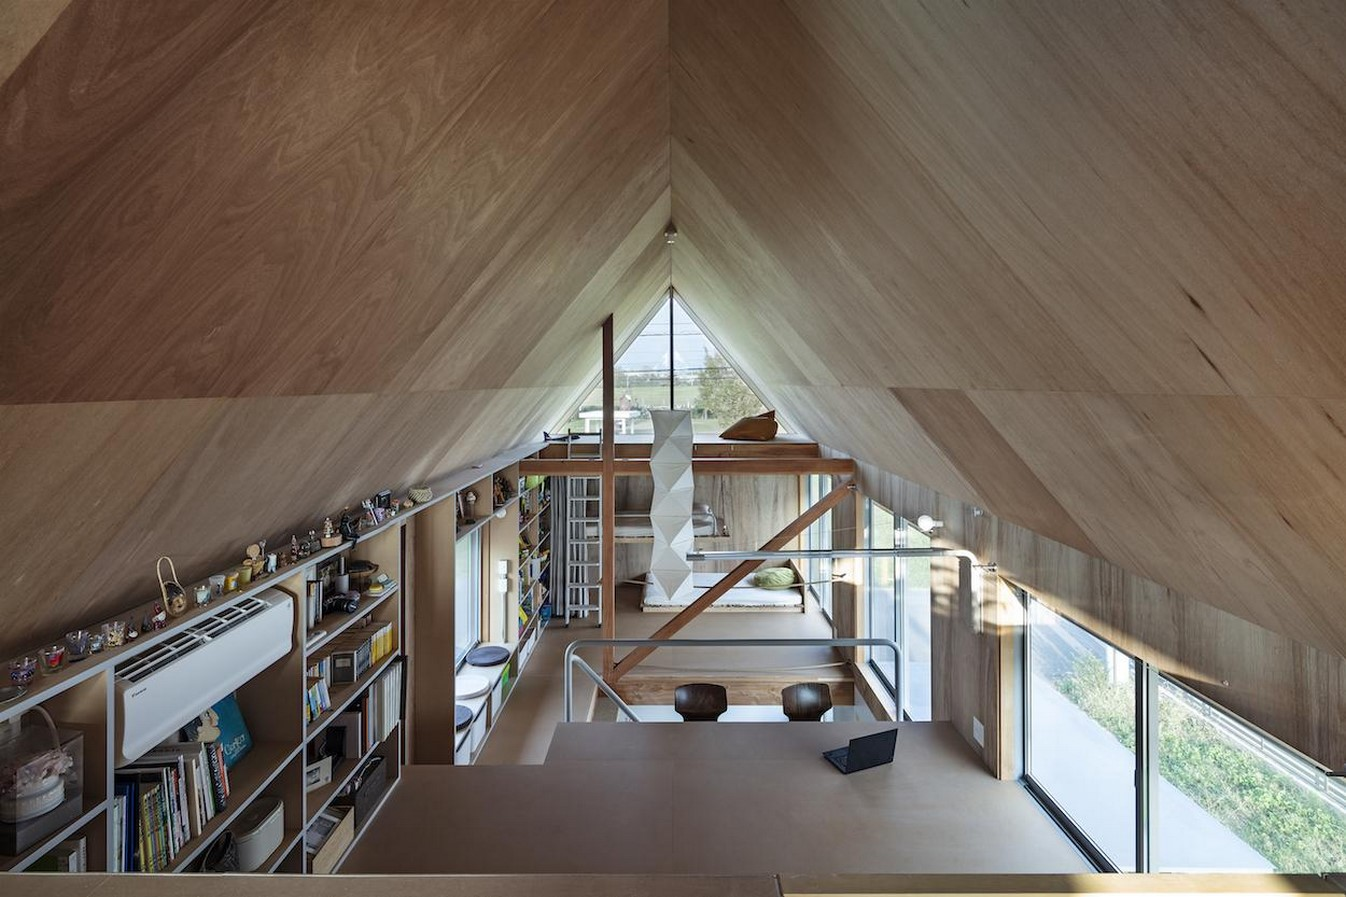 House in field' containing variety of living spaces beneath its gable roof designed by Ship Architecture - Sheet4